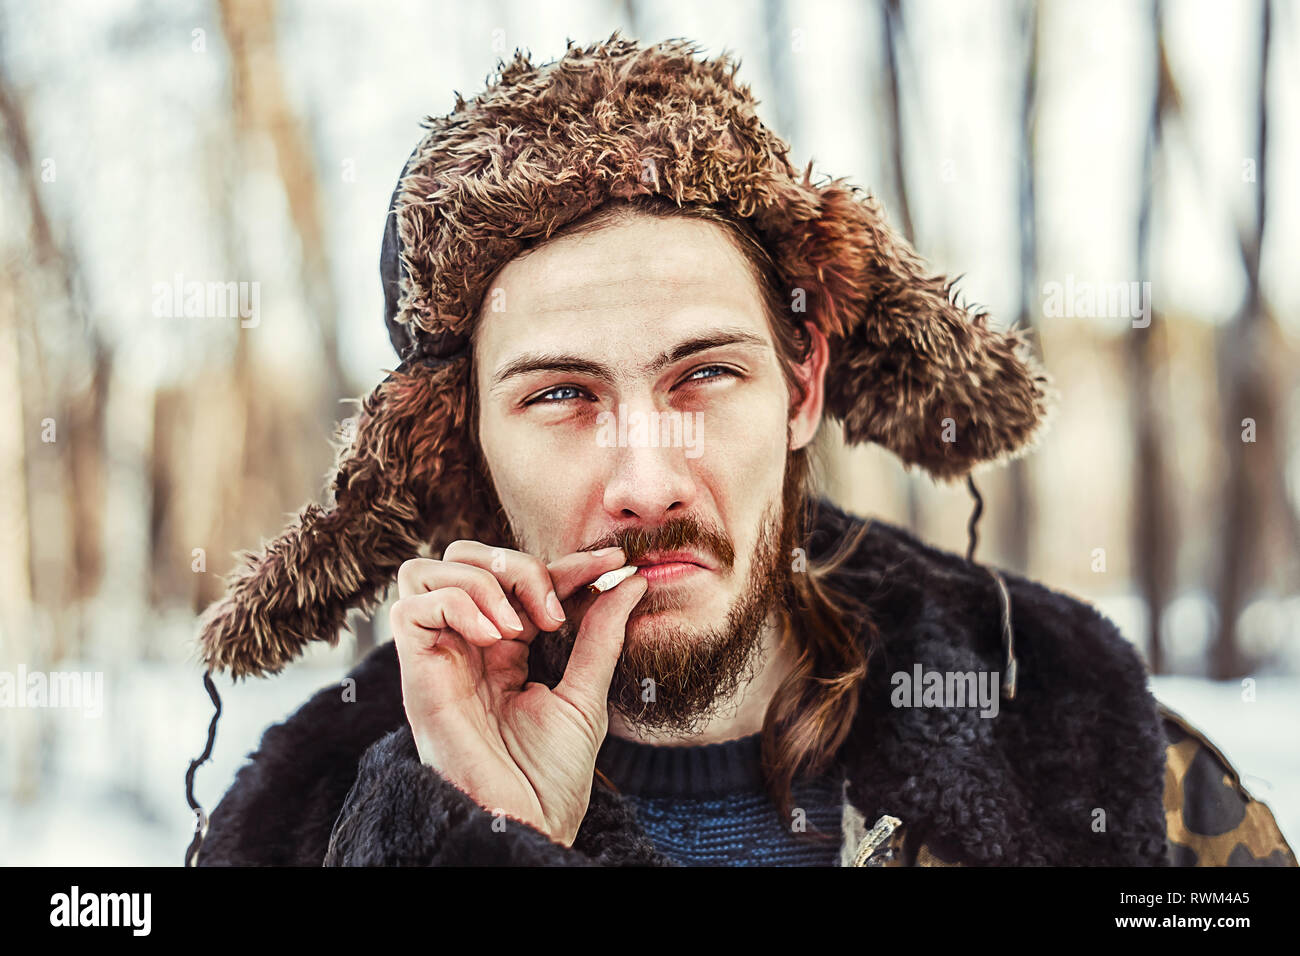 Siberian Russian man in a hat earflaps with a cigarette - Stock Image